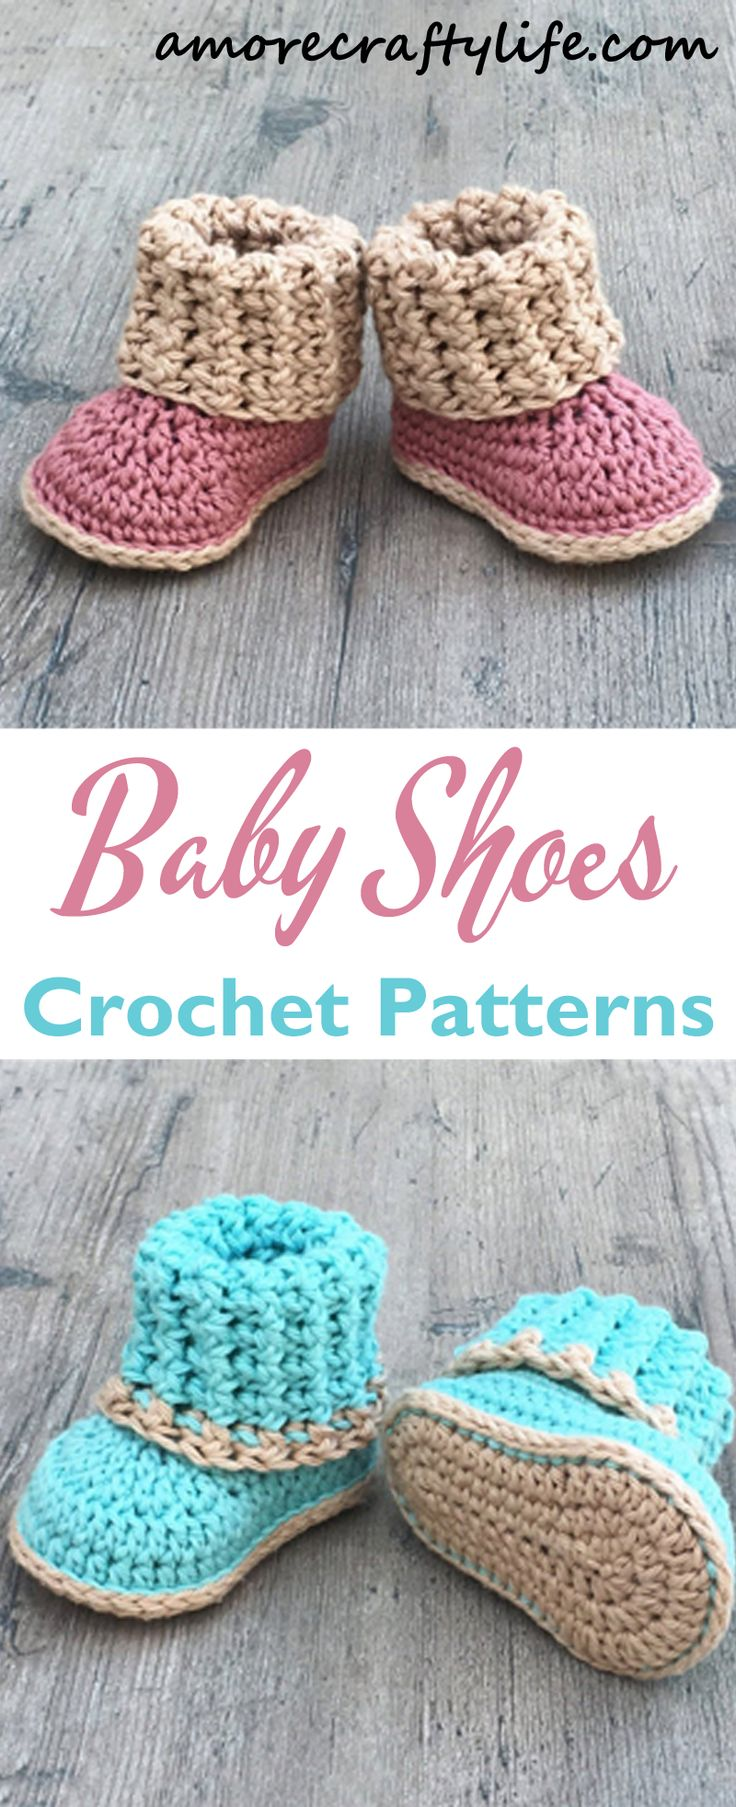 Make a Cute Pair of Baby Shoes